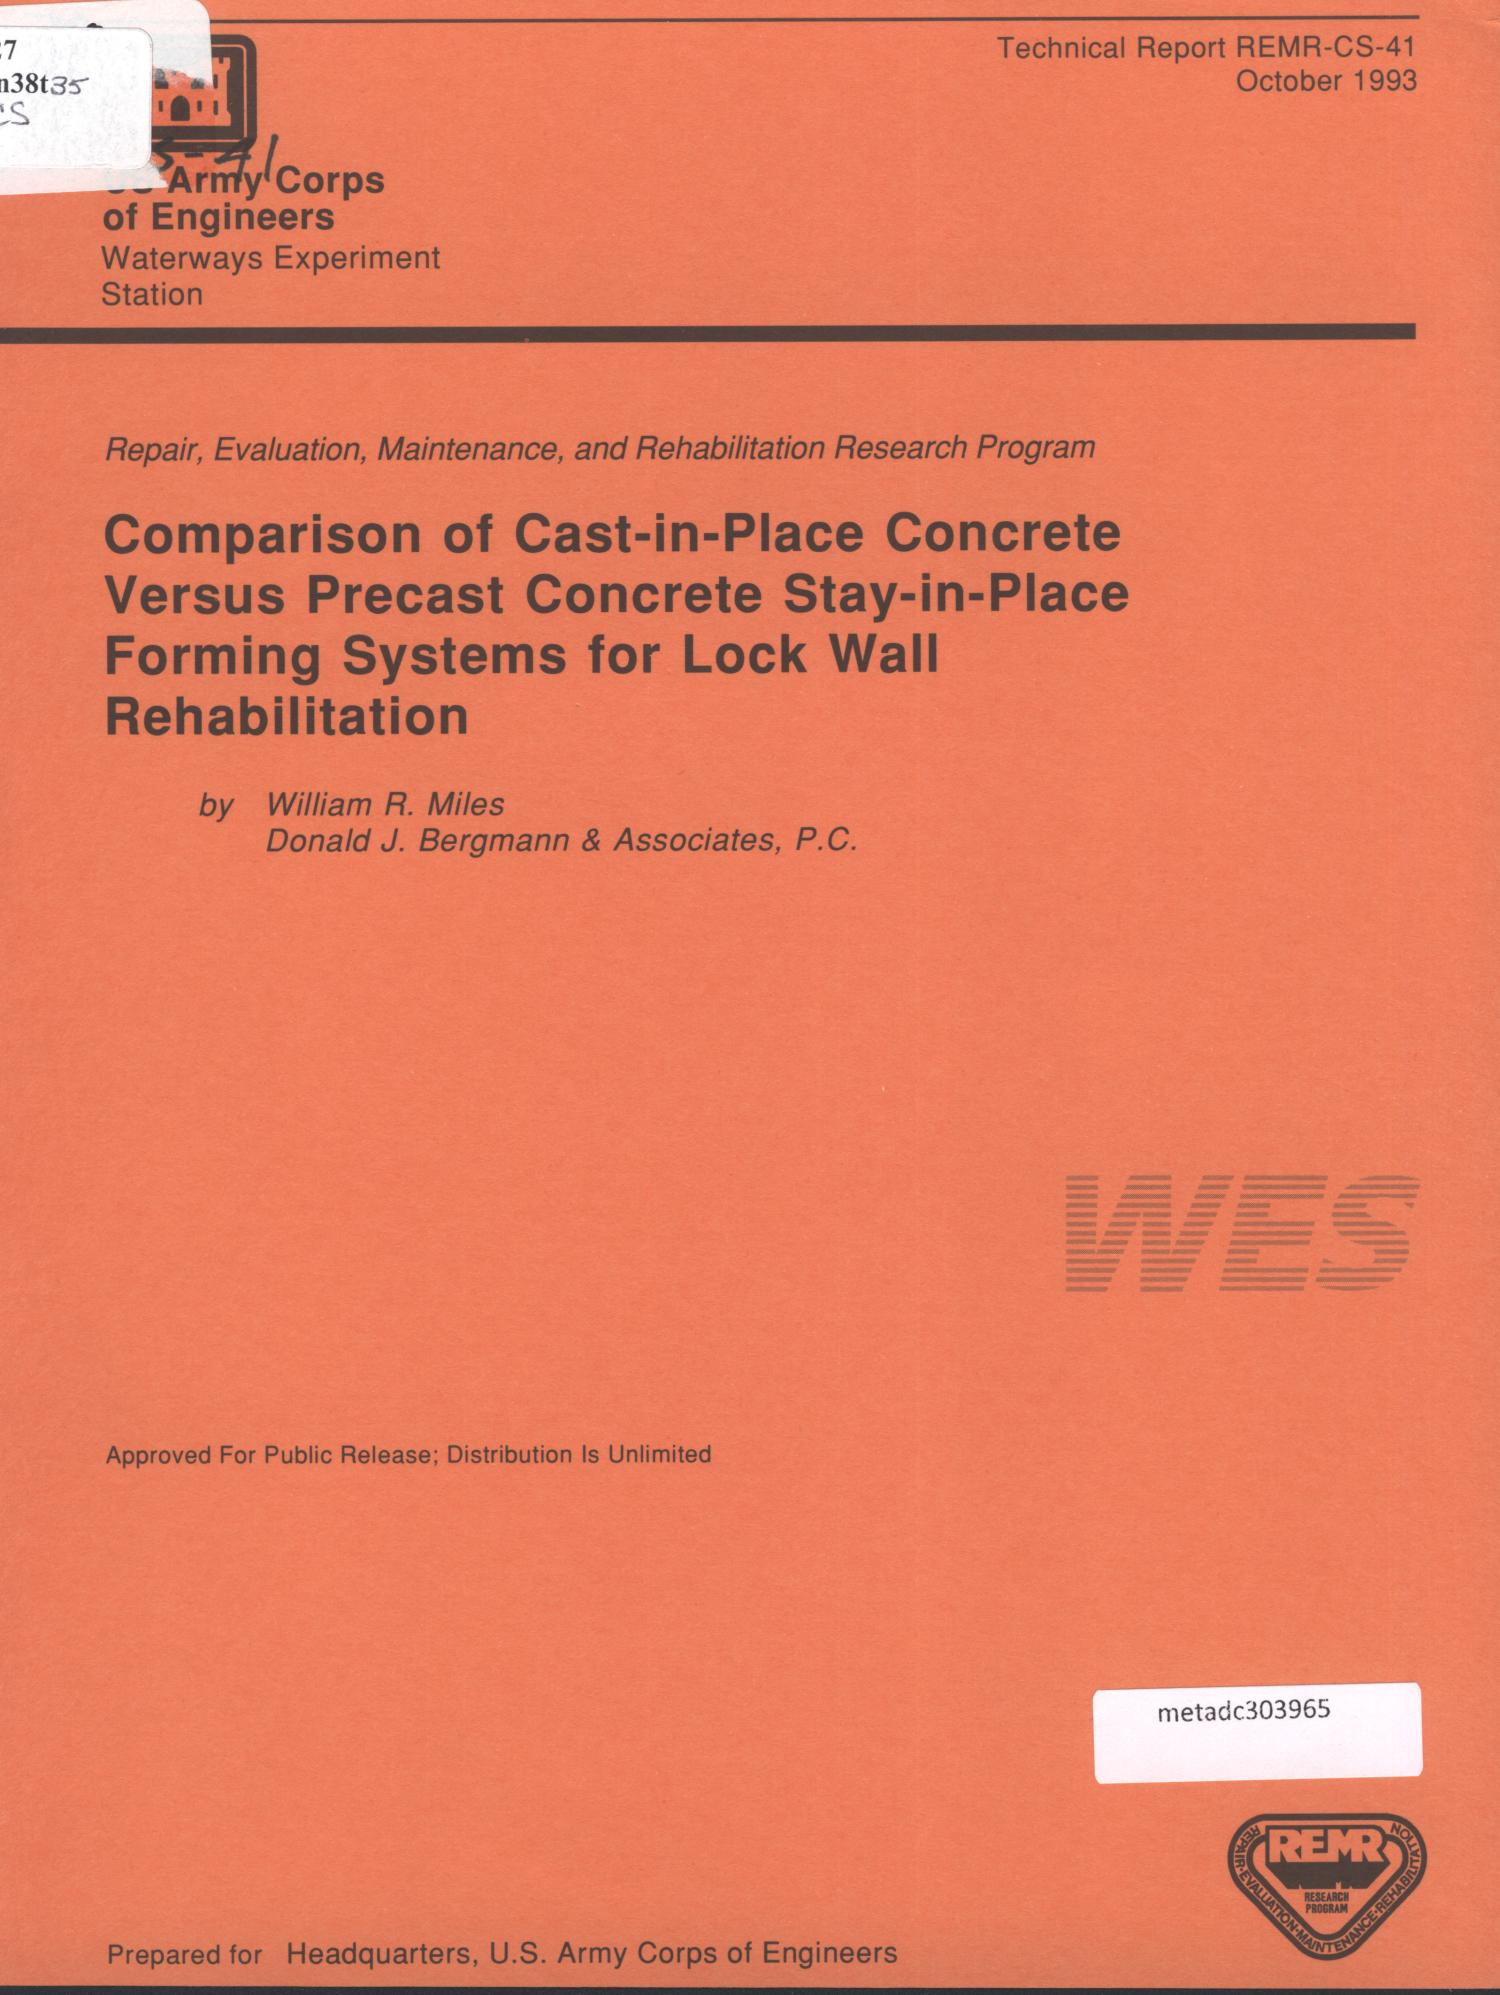 Comparison of Cast-in-Place Concrete Versus Precast Concrete Stay-in-Place Forming Systems for Lock Wall Rehabilitation                                                                                                      [Sequence #]: 1 of 104